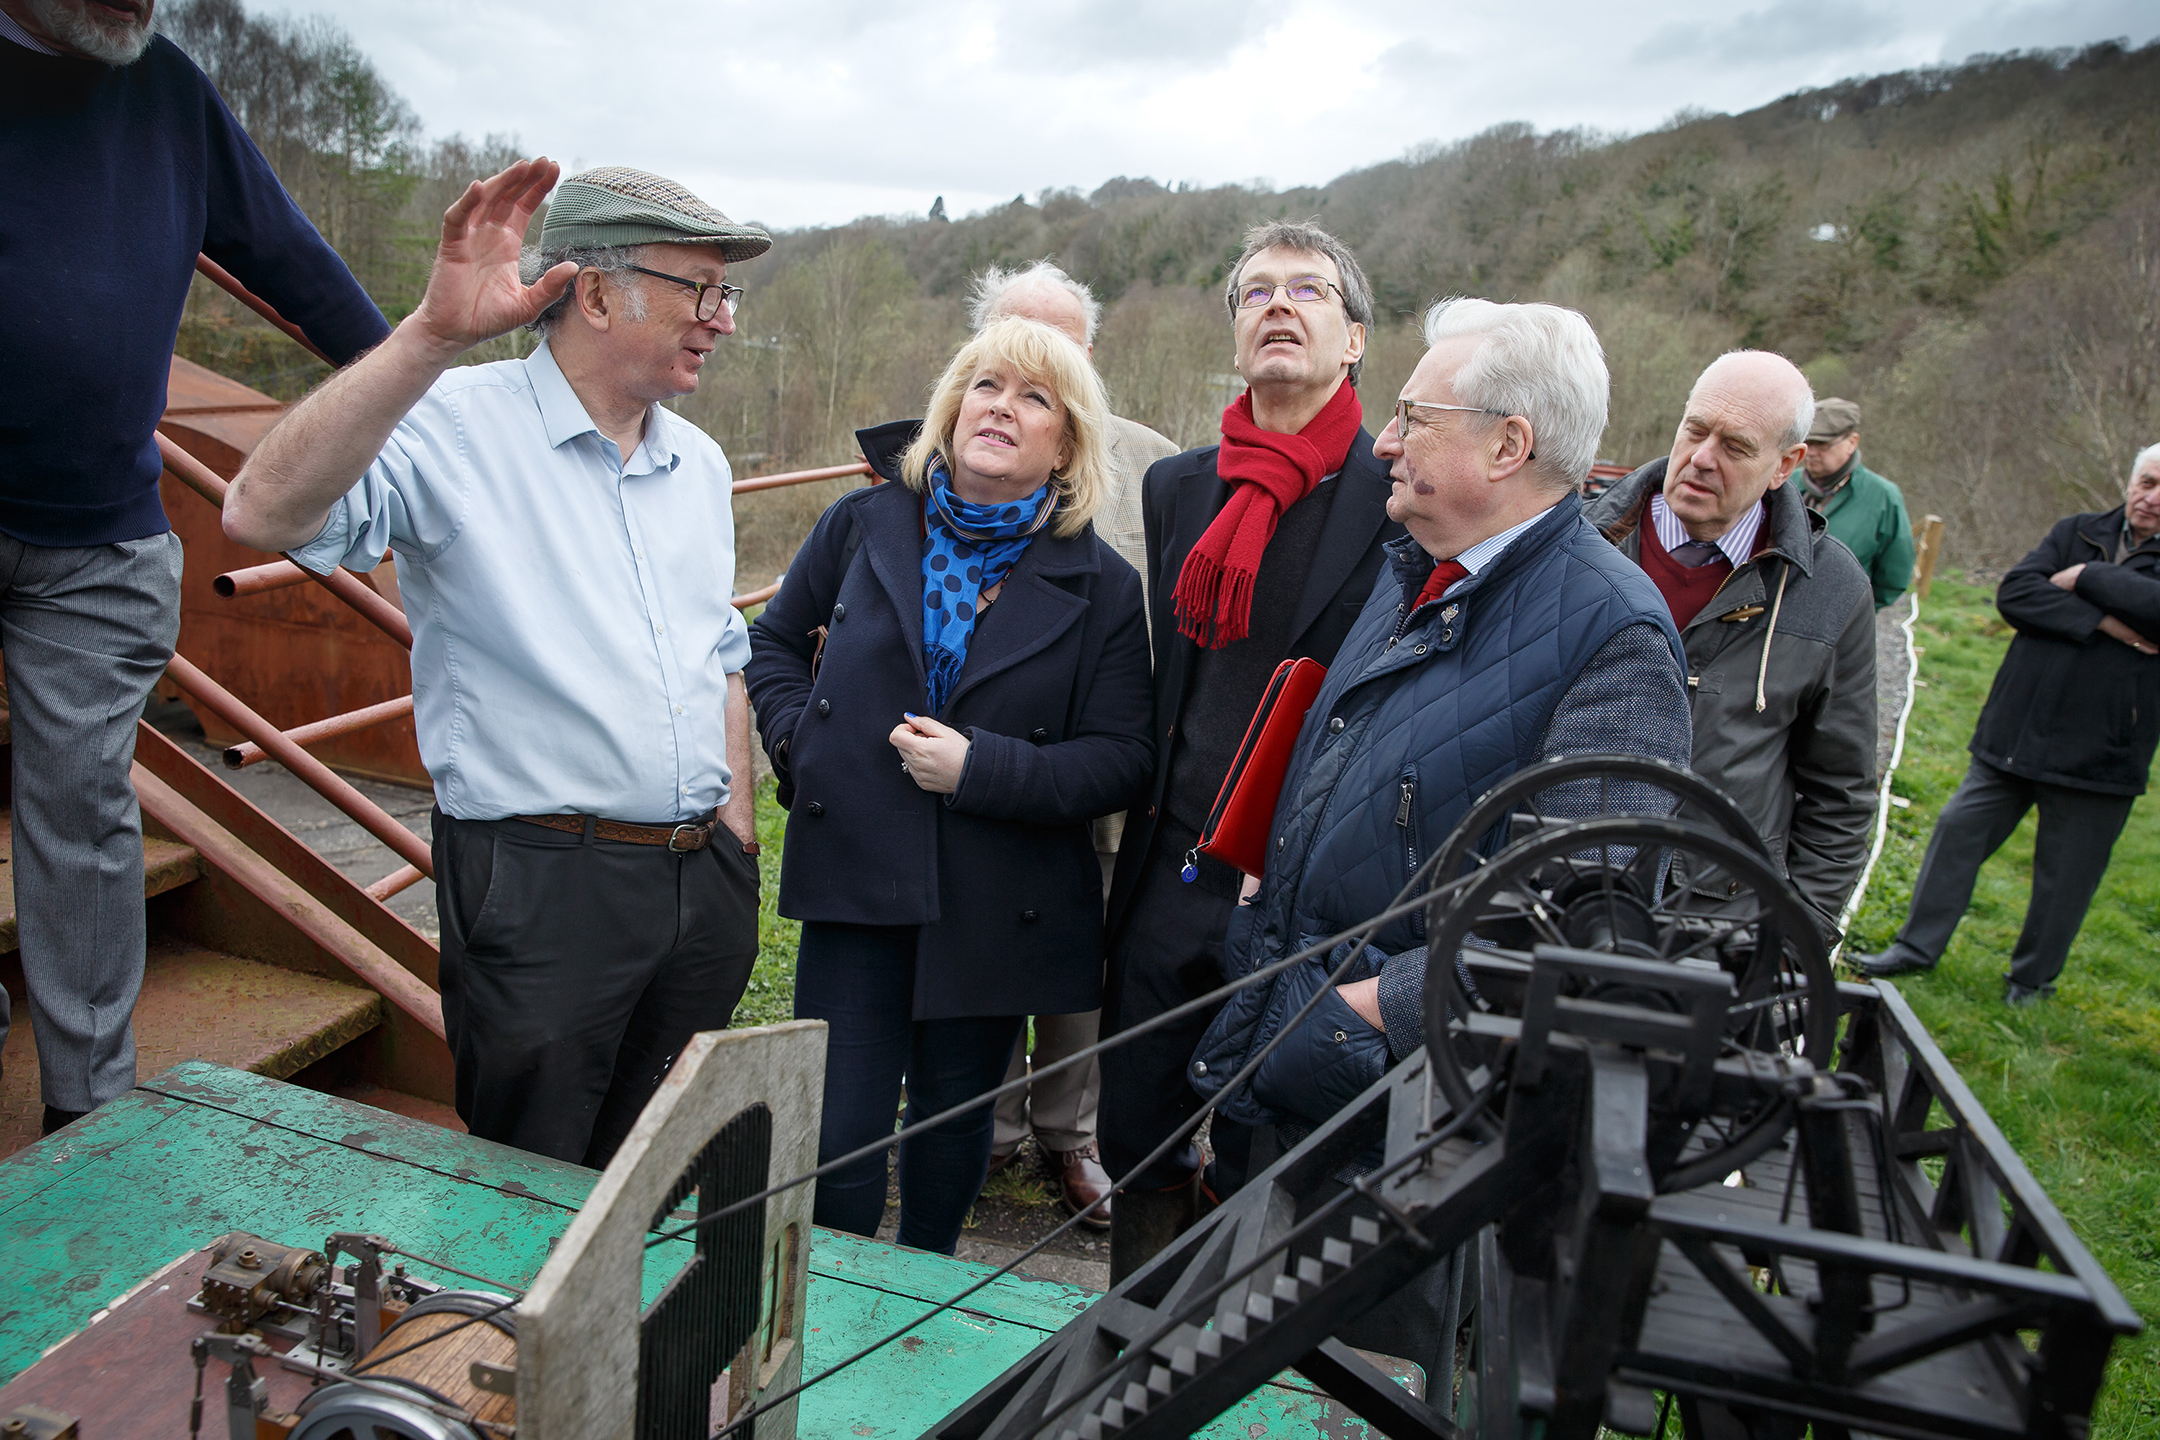 At Hetty Winding House Left to Right: Brian Davies, Great Western Colliery Preservation Trust; Susan Mason, CADW; Christopher Catling The Secretary (CEO), RCAHMW; Dafydd Elis-Thomas, Wales's Heritage Minister.